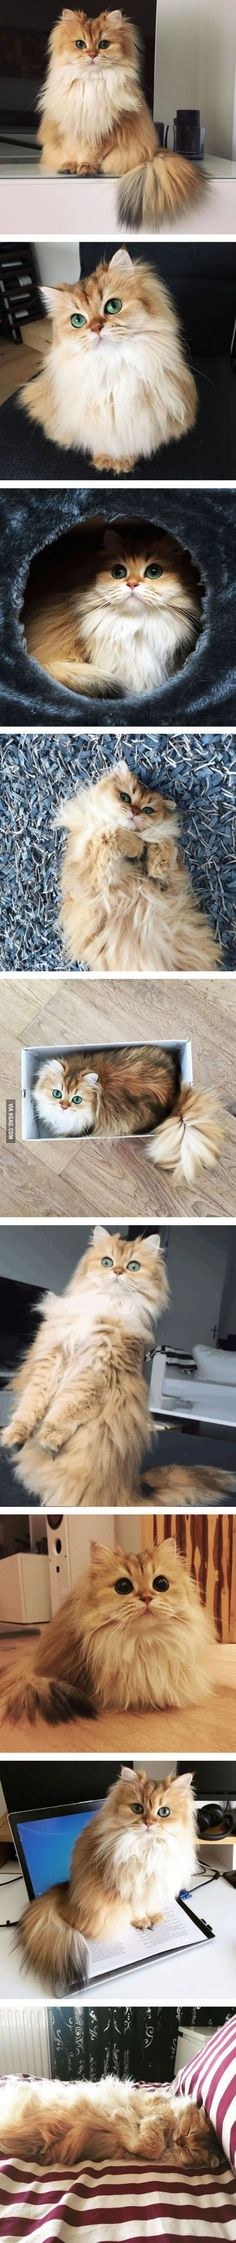 This Is Smoothie The Worlds Most Photogenic Cat